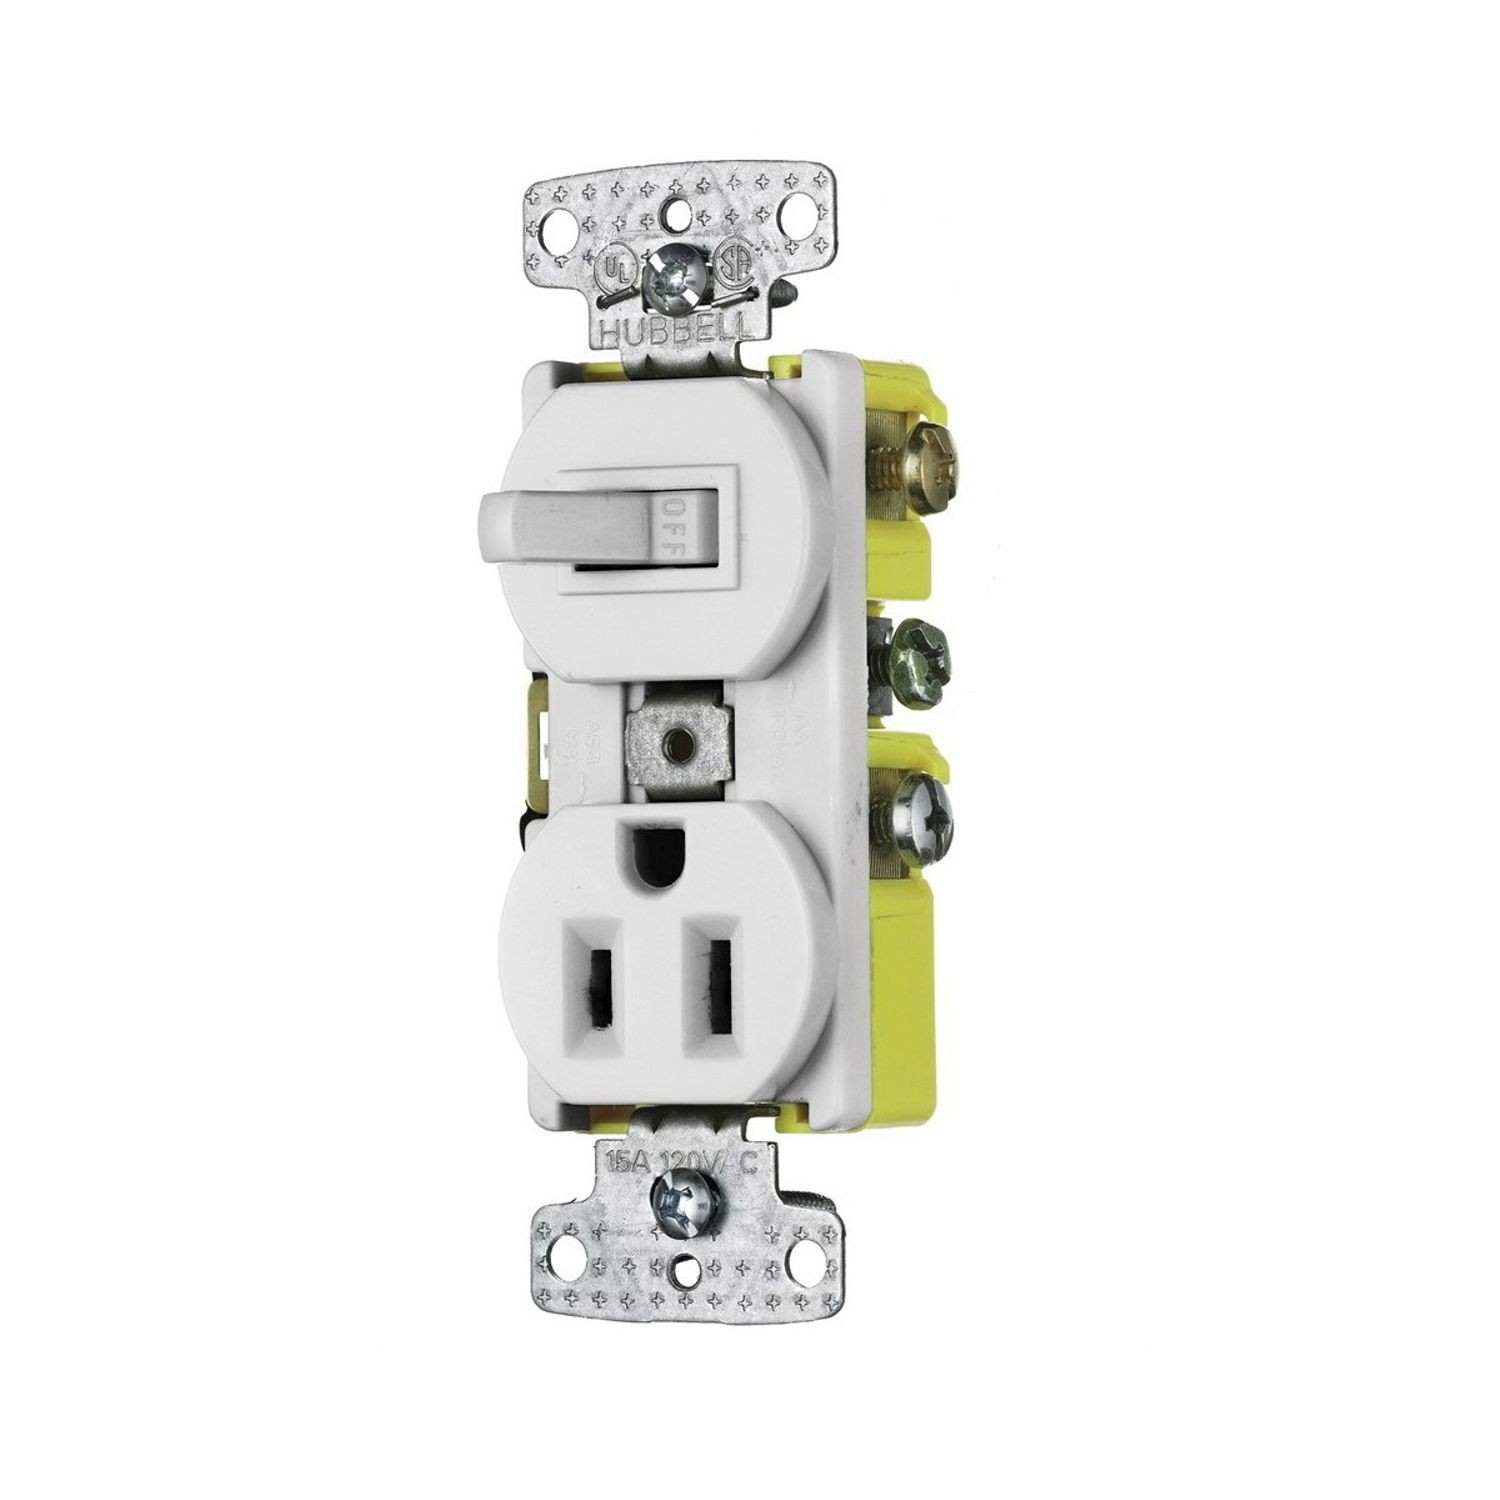 Wiring Device Kellems Tradeselect Traditional Tamper Resistant A Switched Receptacle Combination Switch And 15 At 120 125 Vac